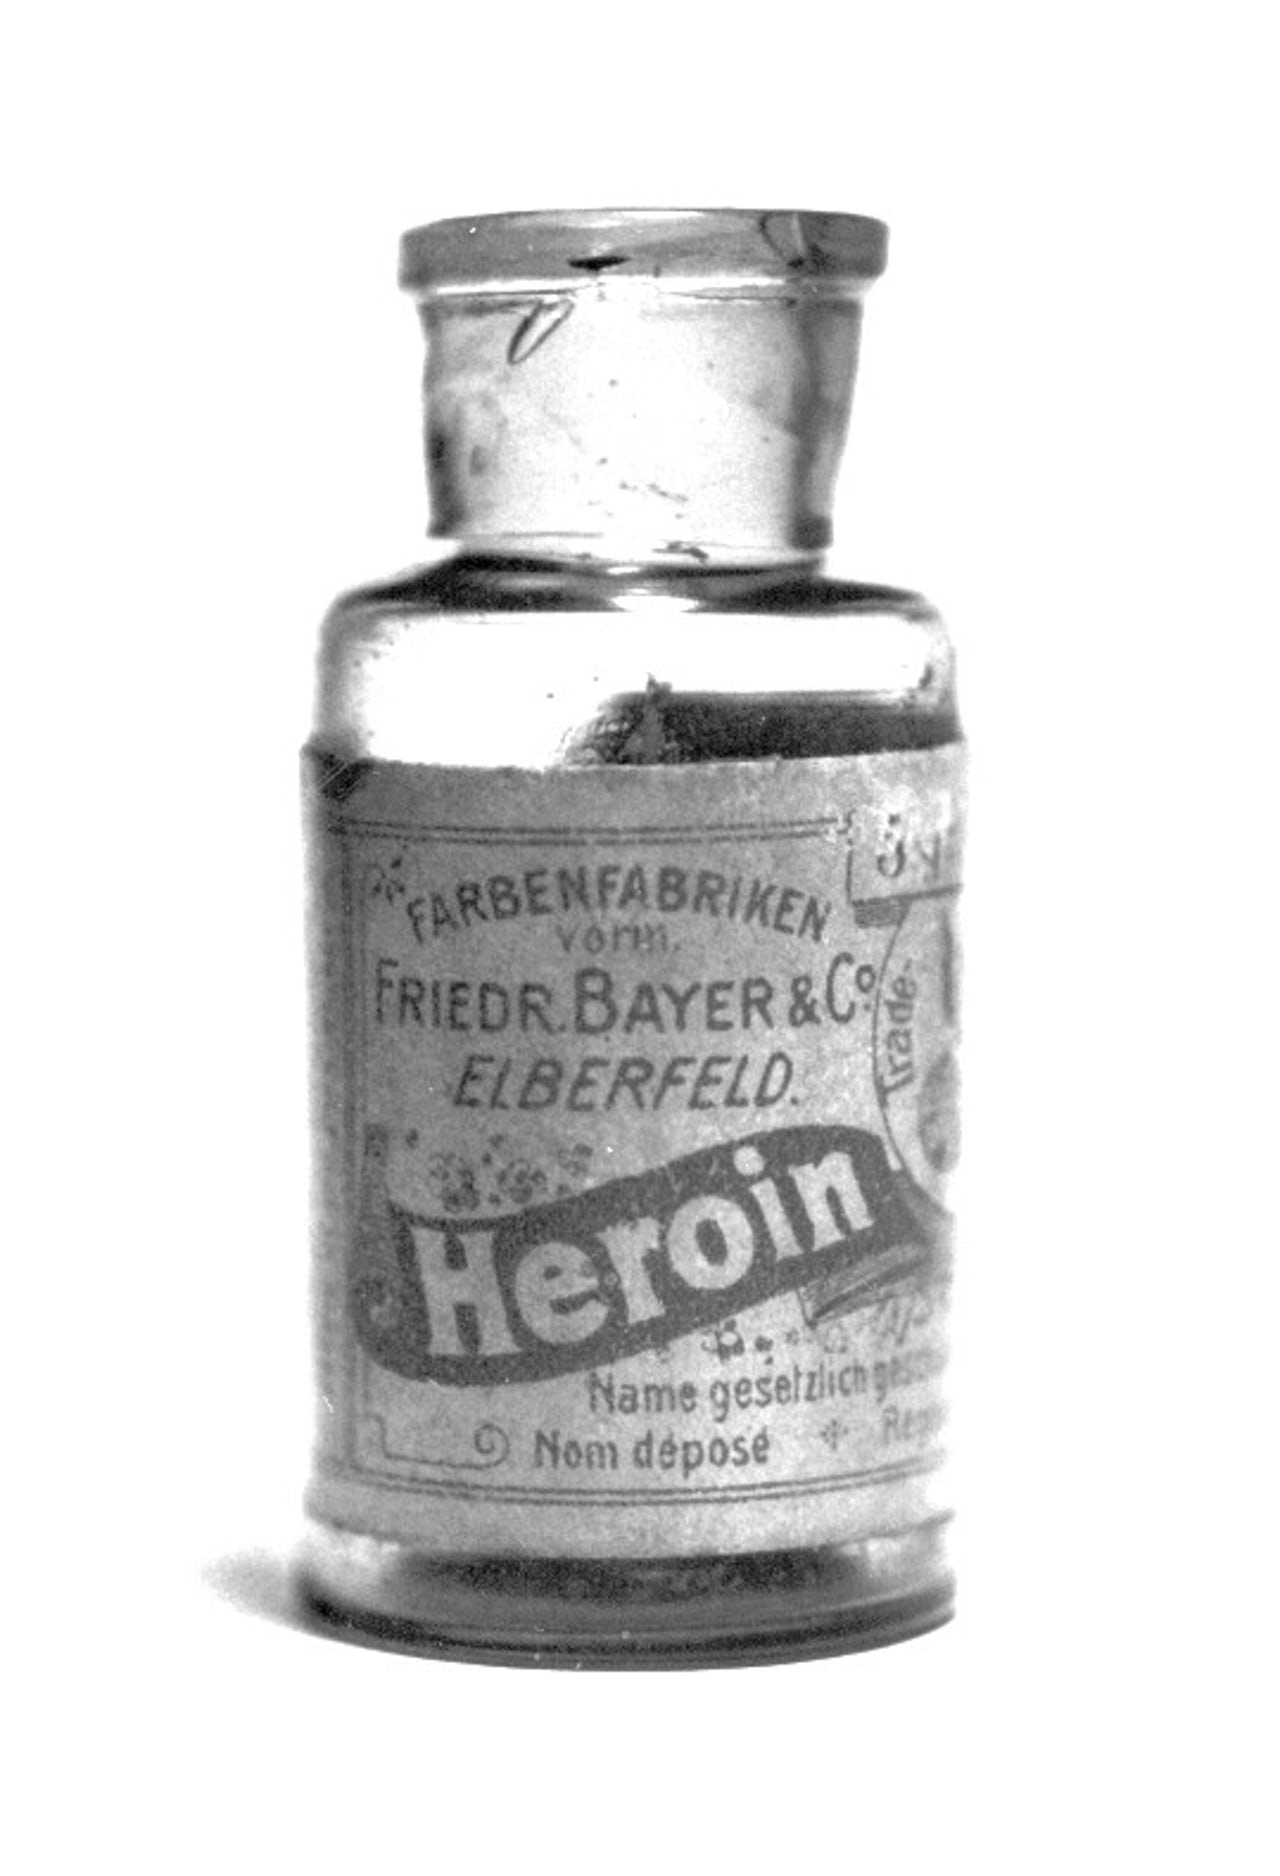 Heroin was legal in Germany until the 1950s.